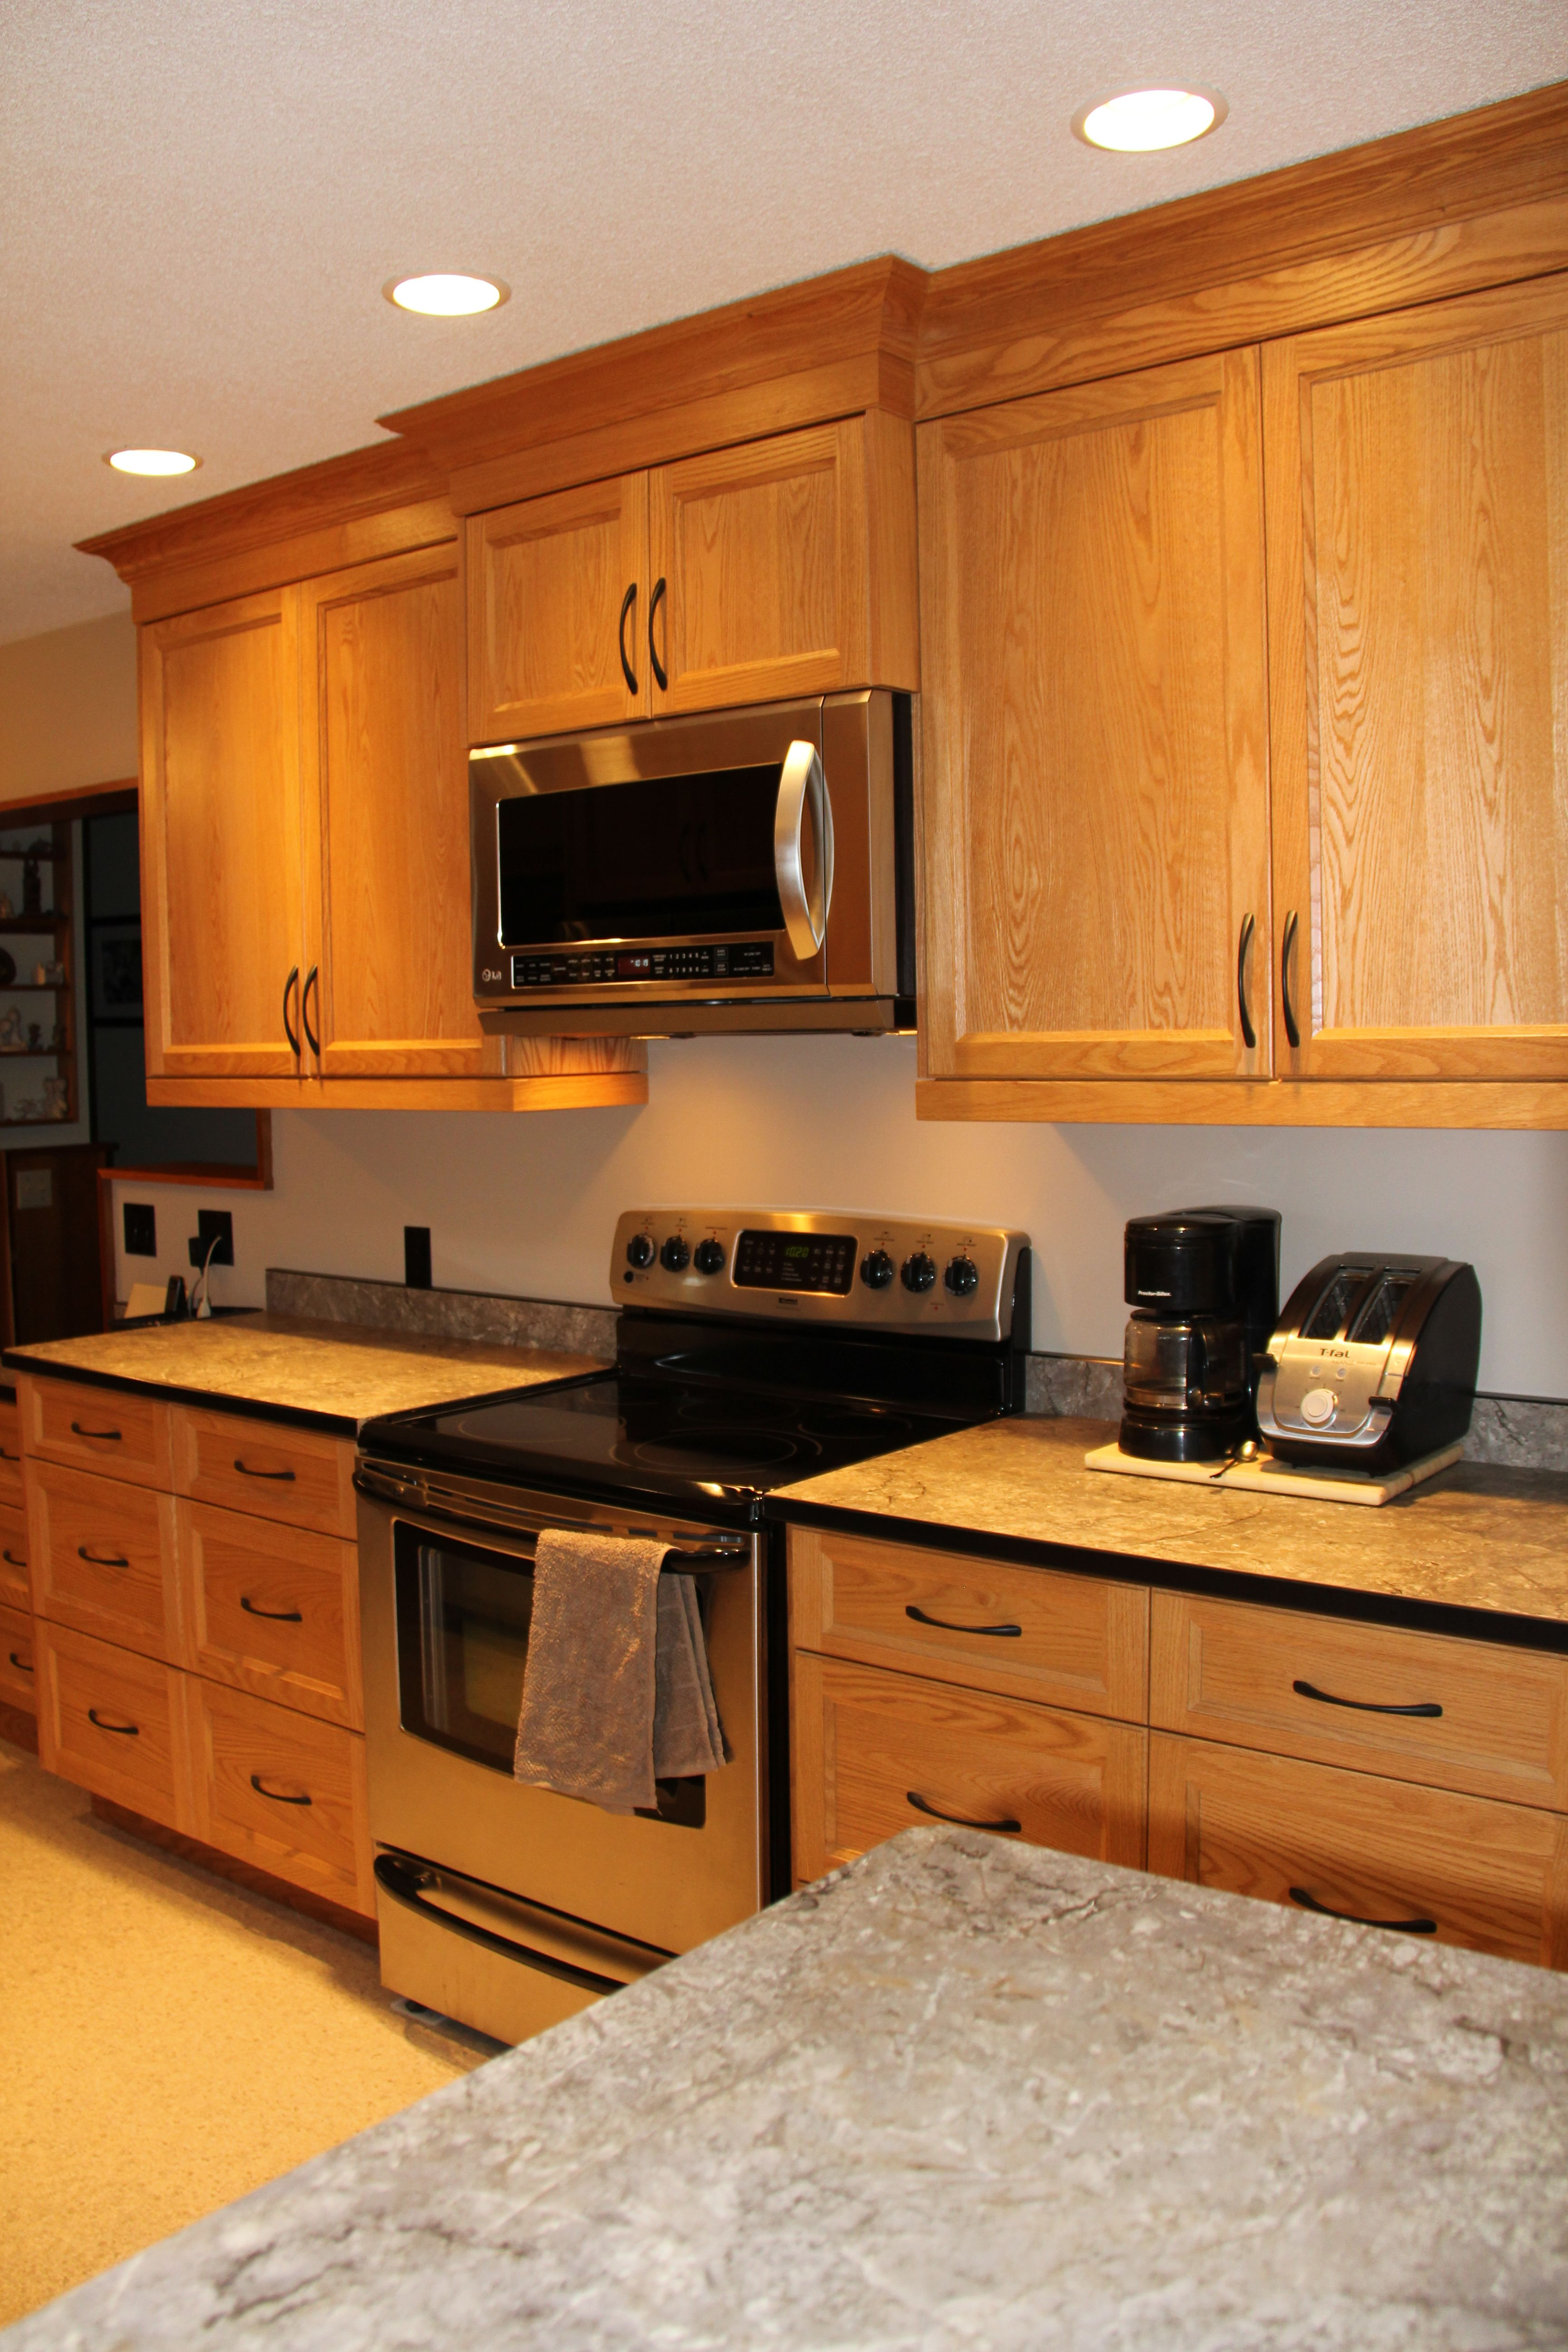 Red Oak Shaker Style Kitchen And A Laminate Countertop With A Solid Black  Corian Edge.